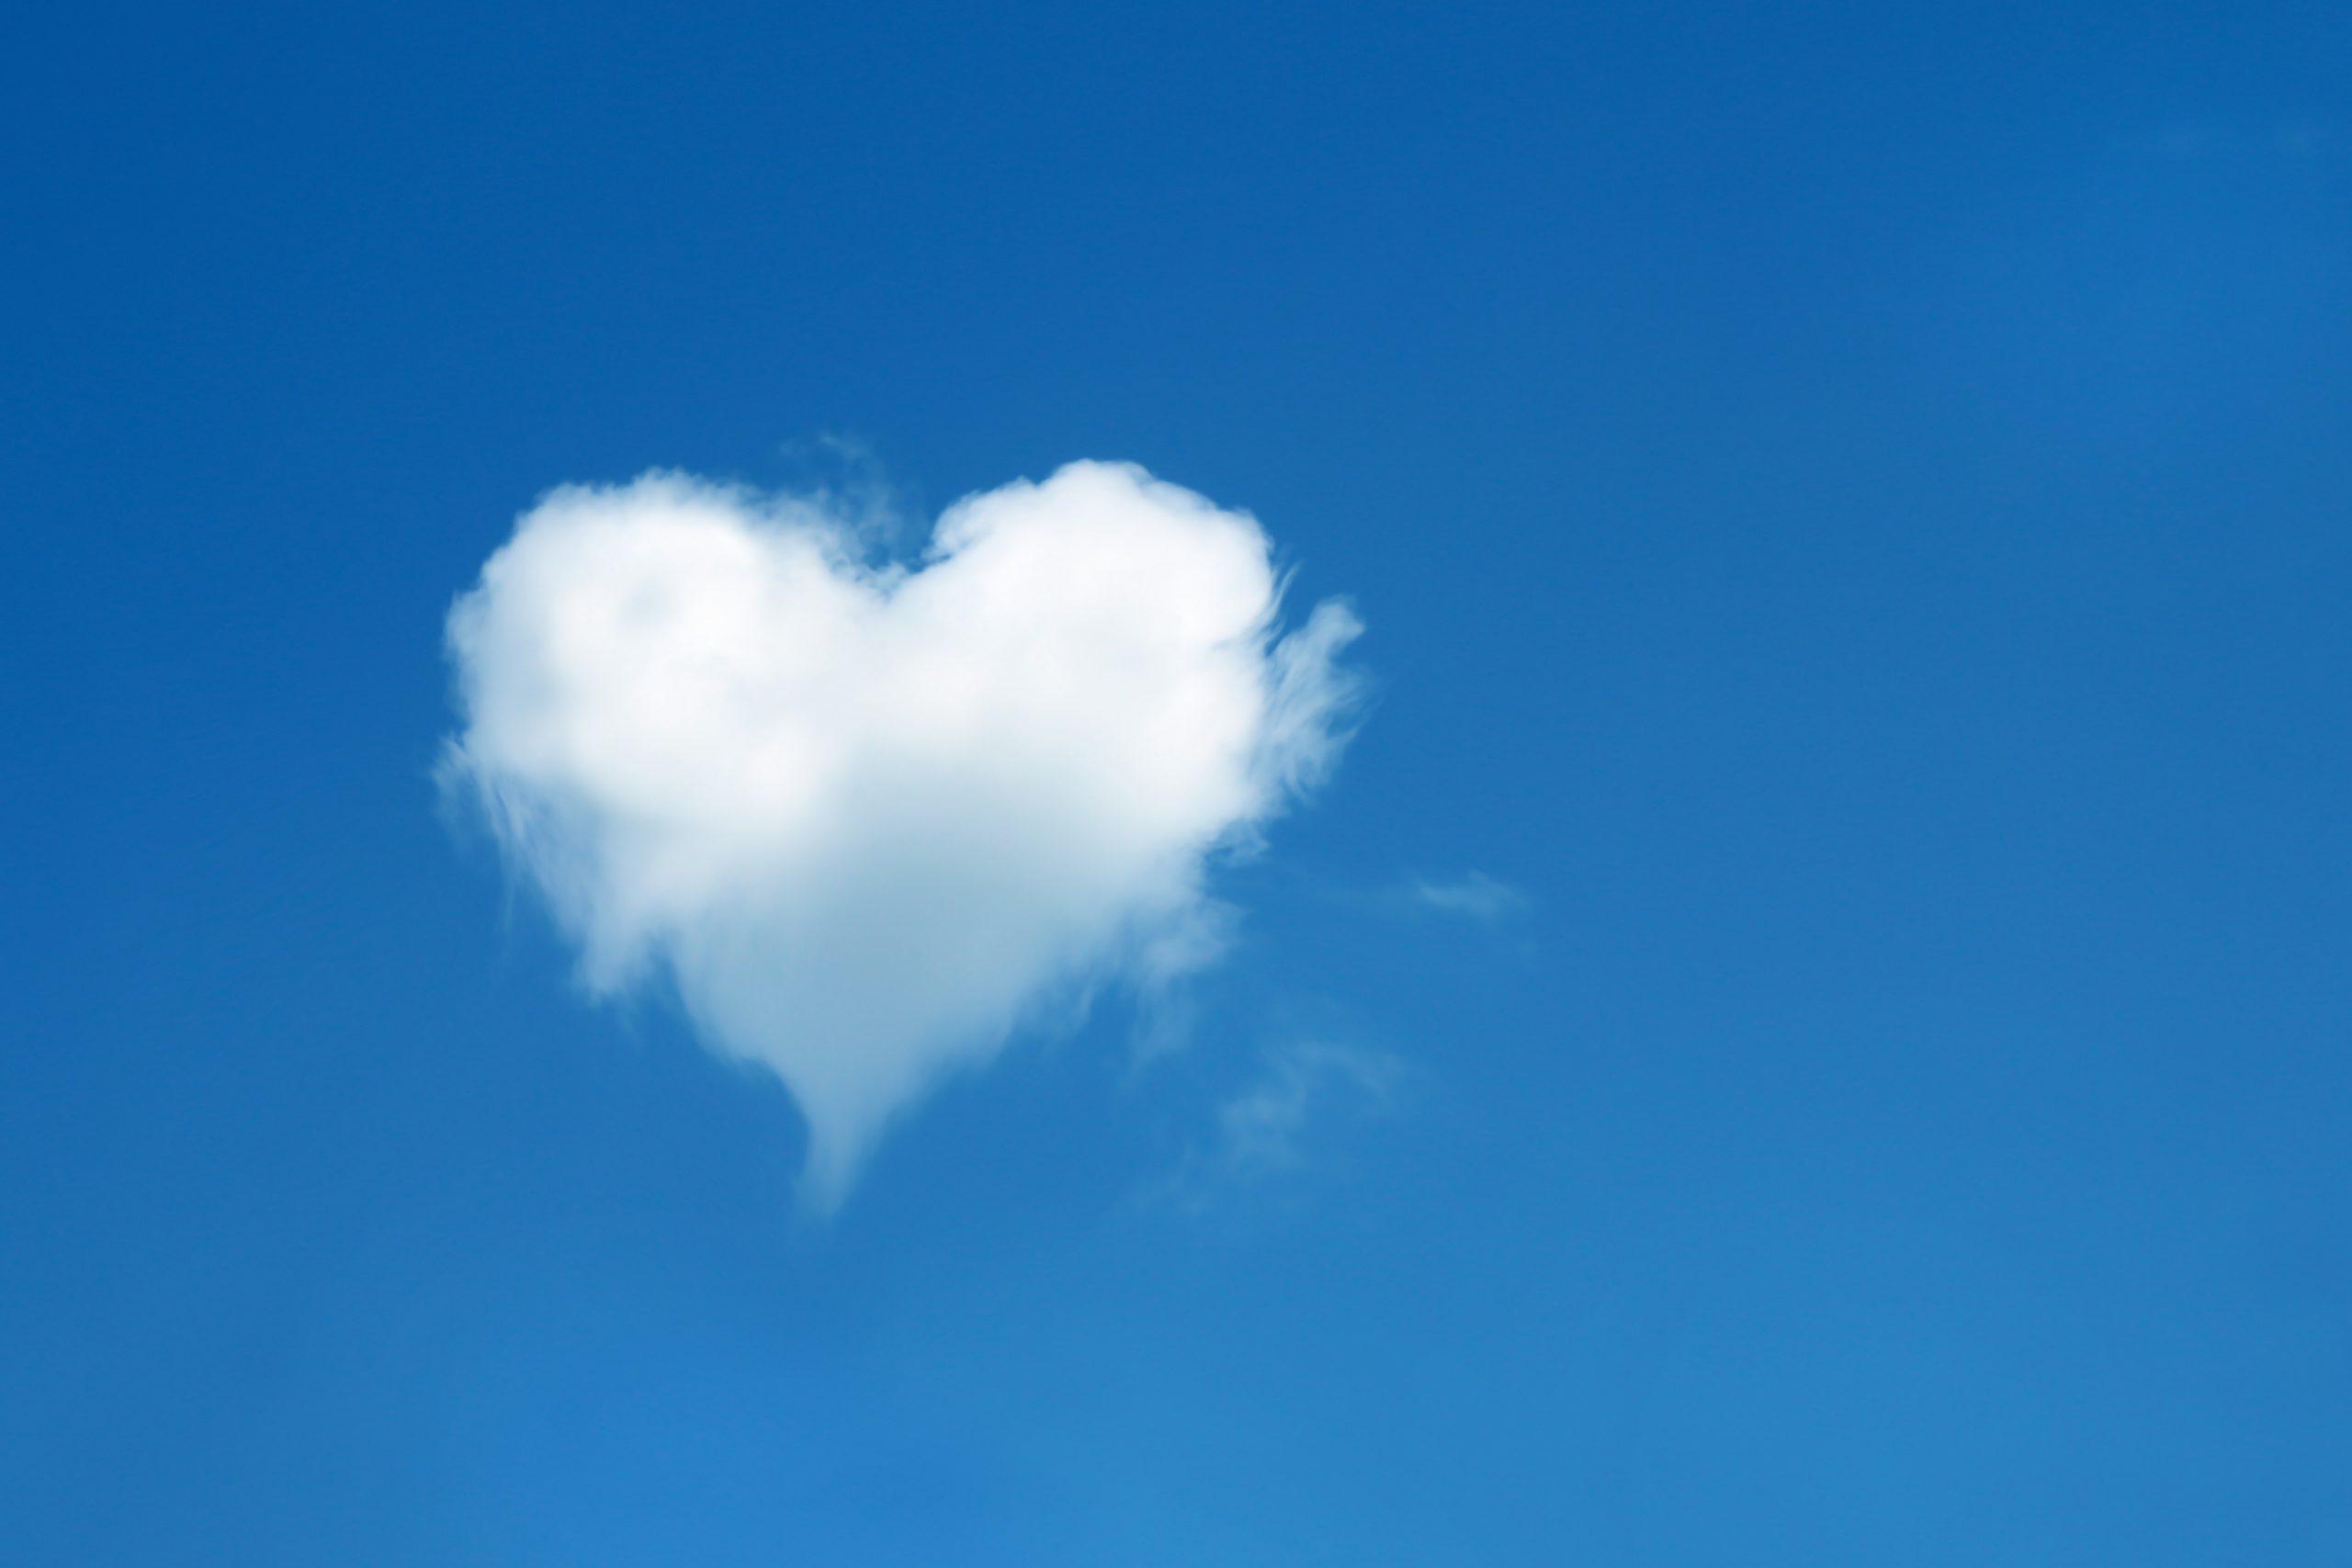 heart shaped cloud in the blue sky